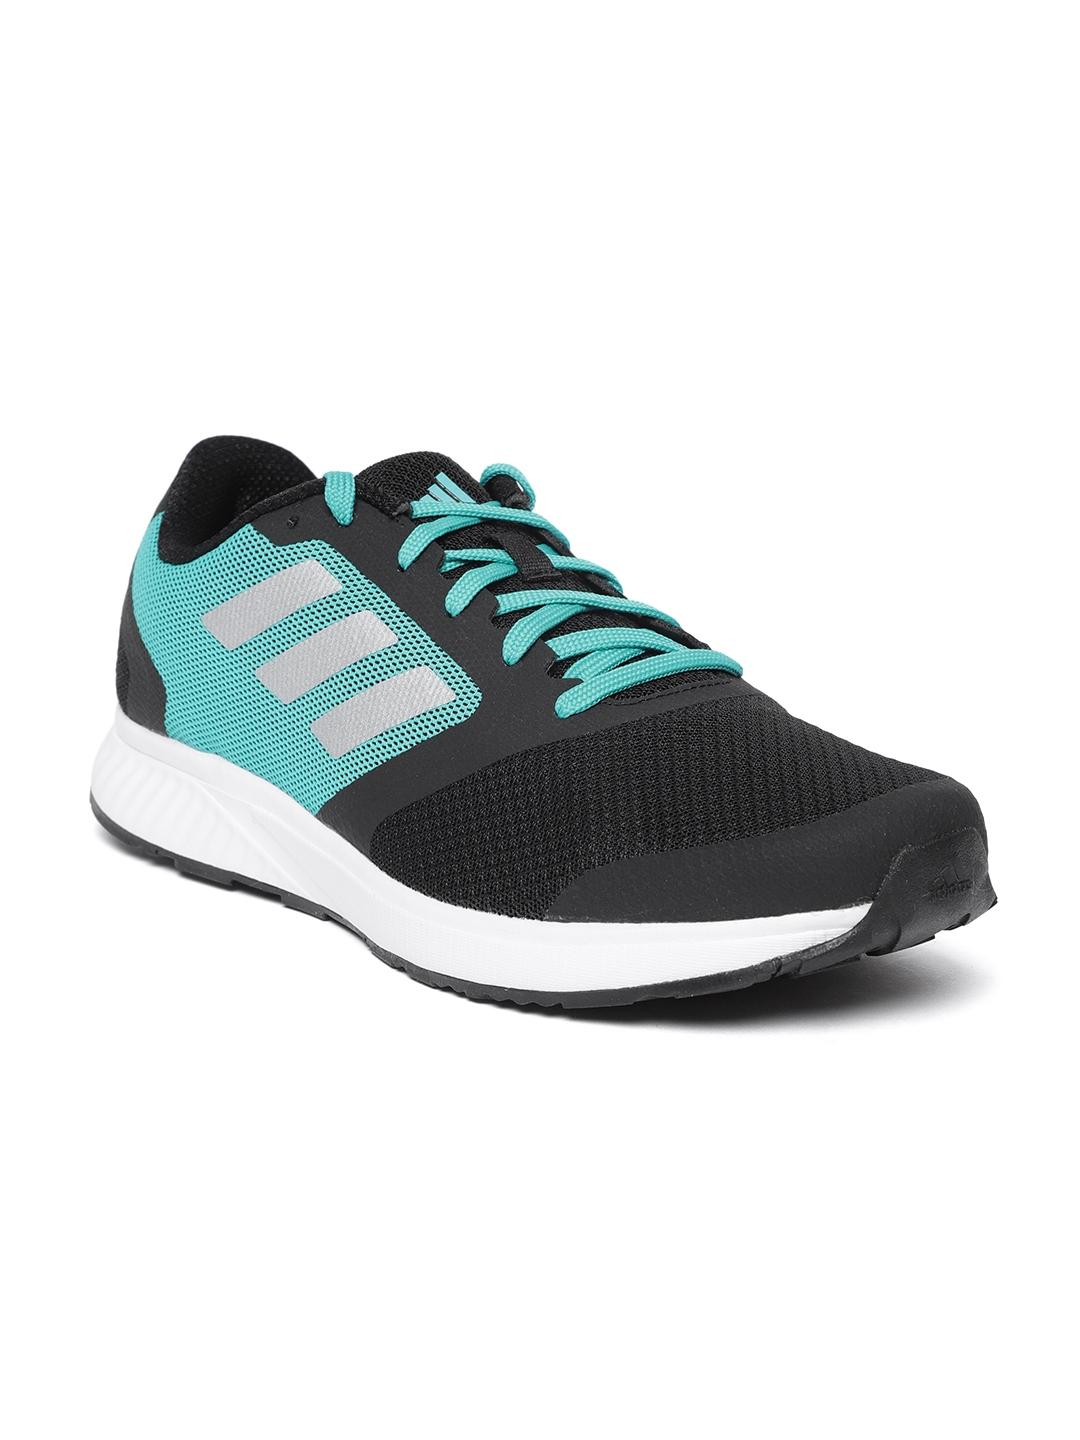 2019 year for women- Shoes adidas men